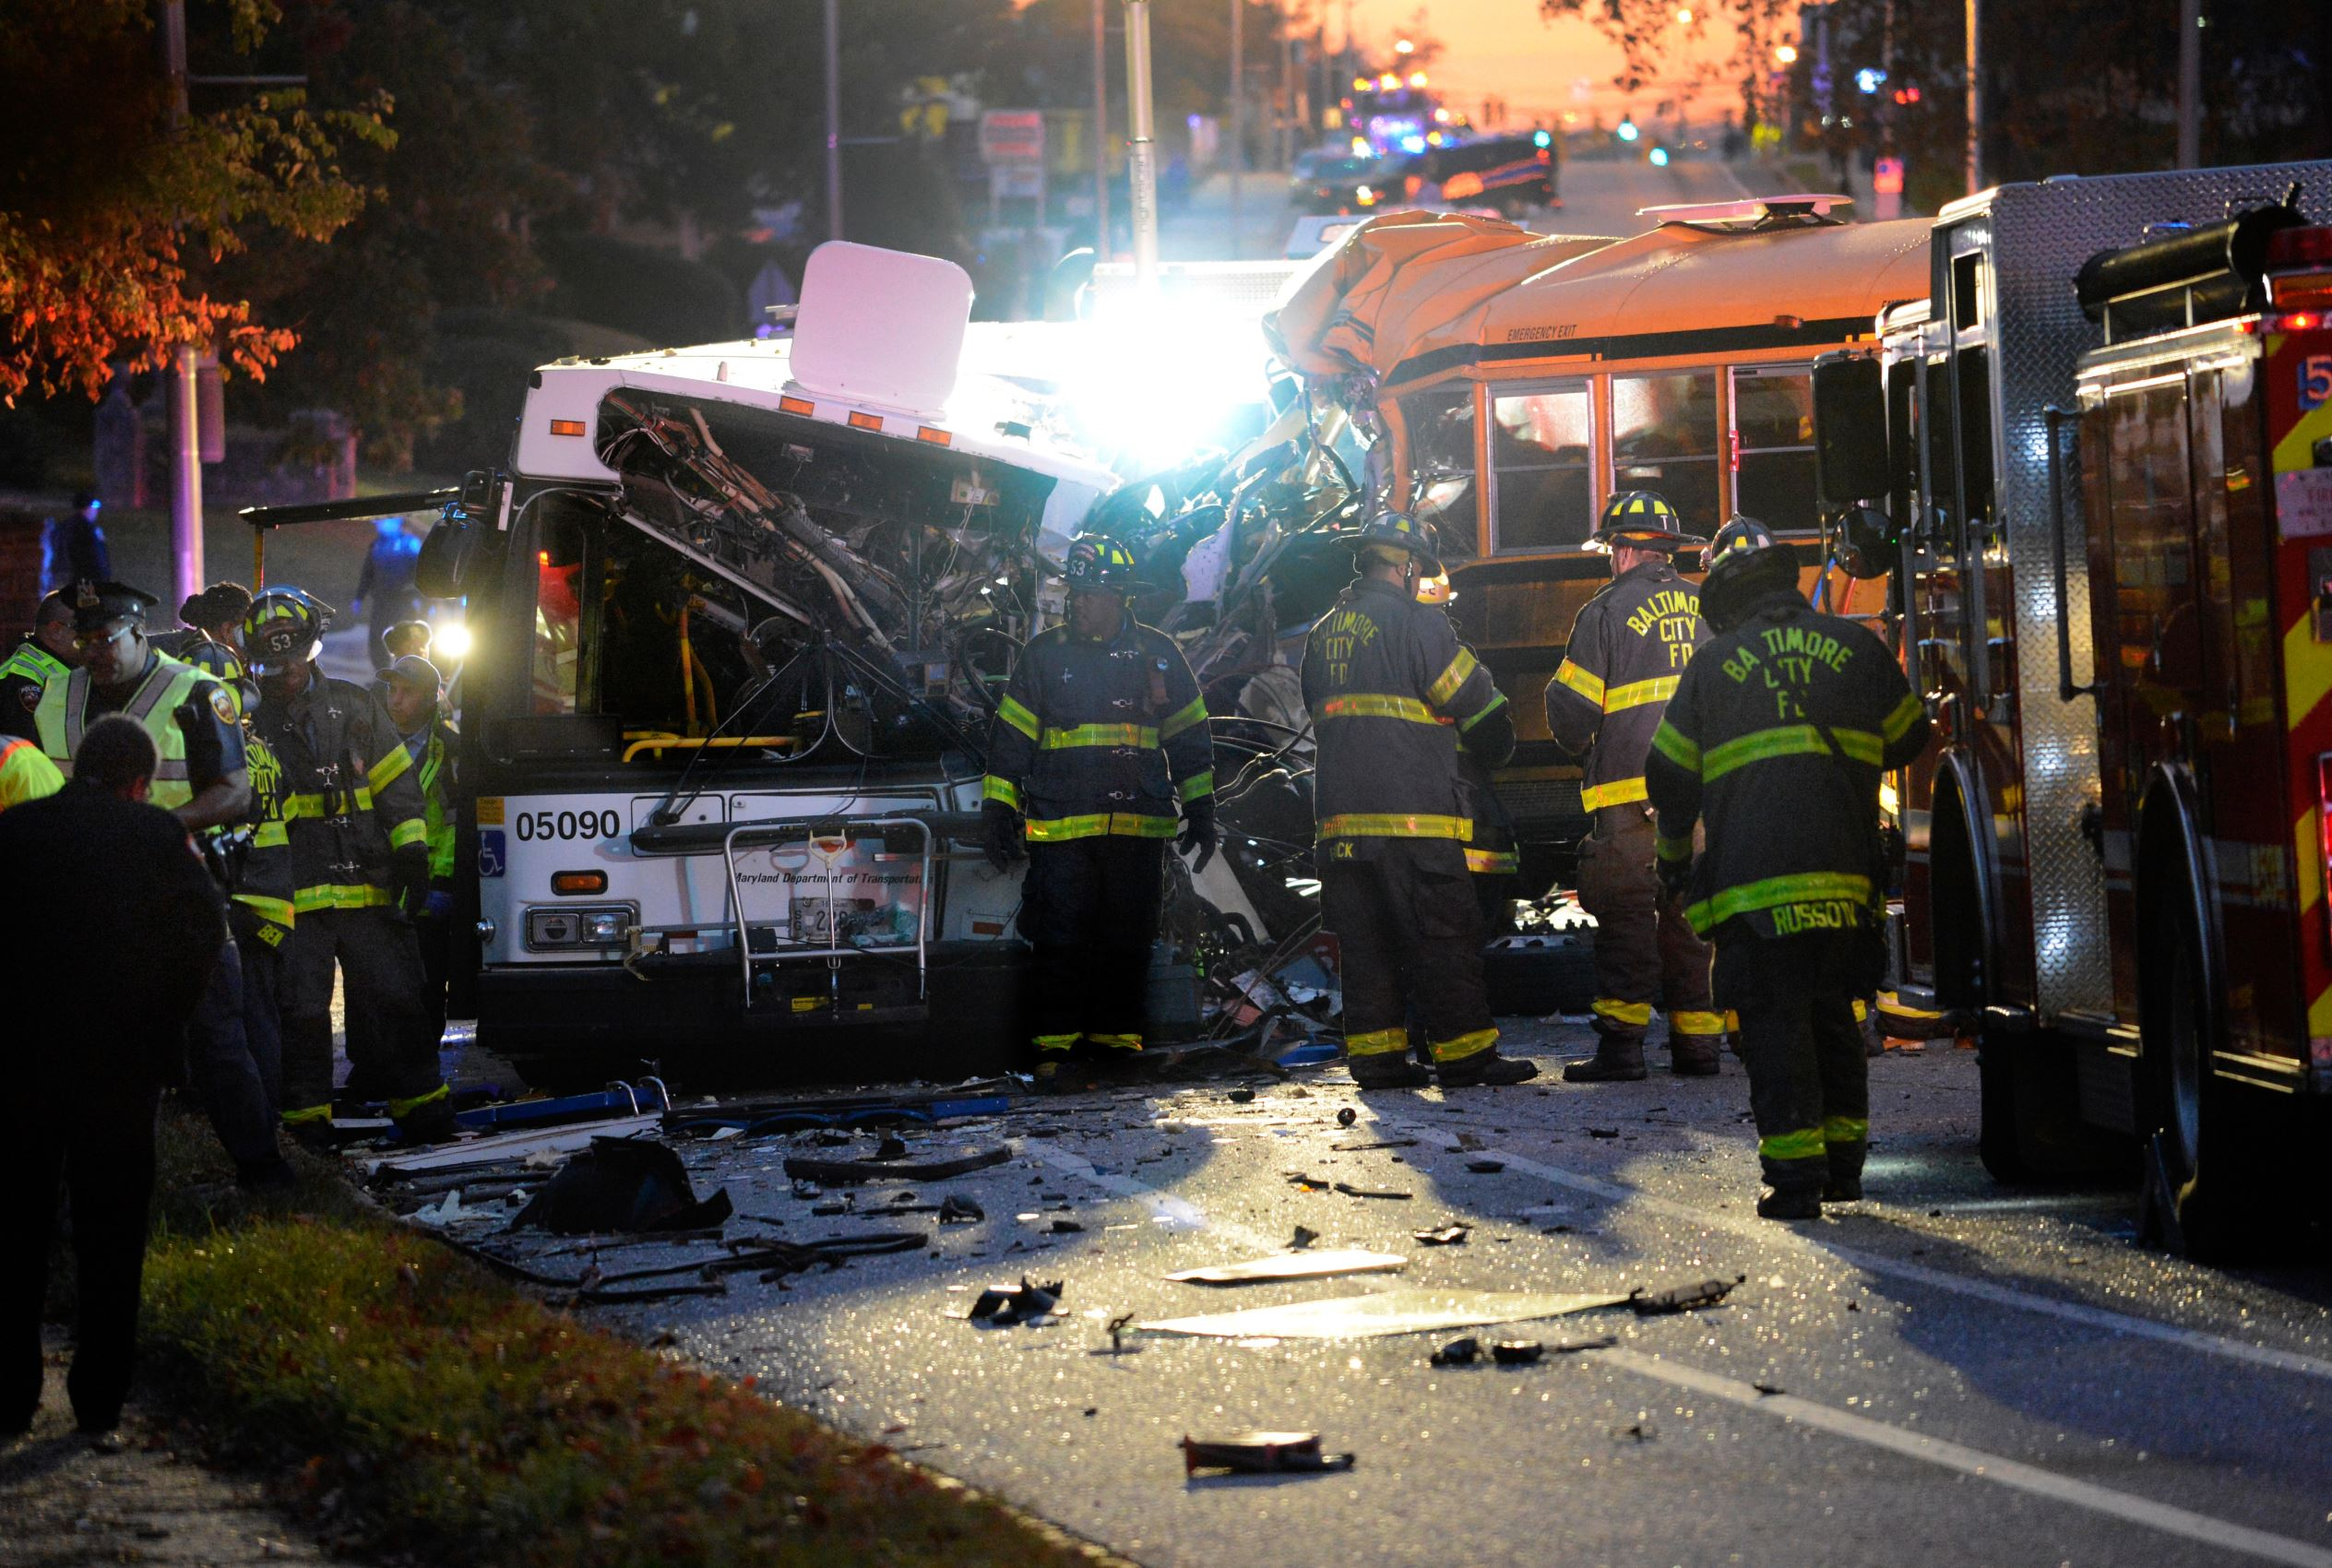 NTSB: Driver in fatal crash was speeding, had prior wrecks